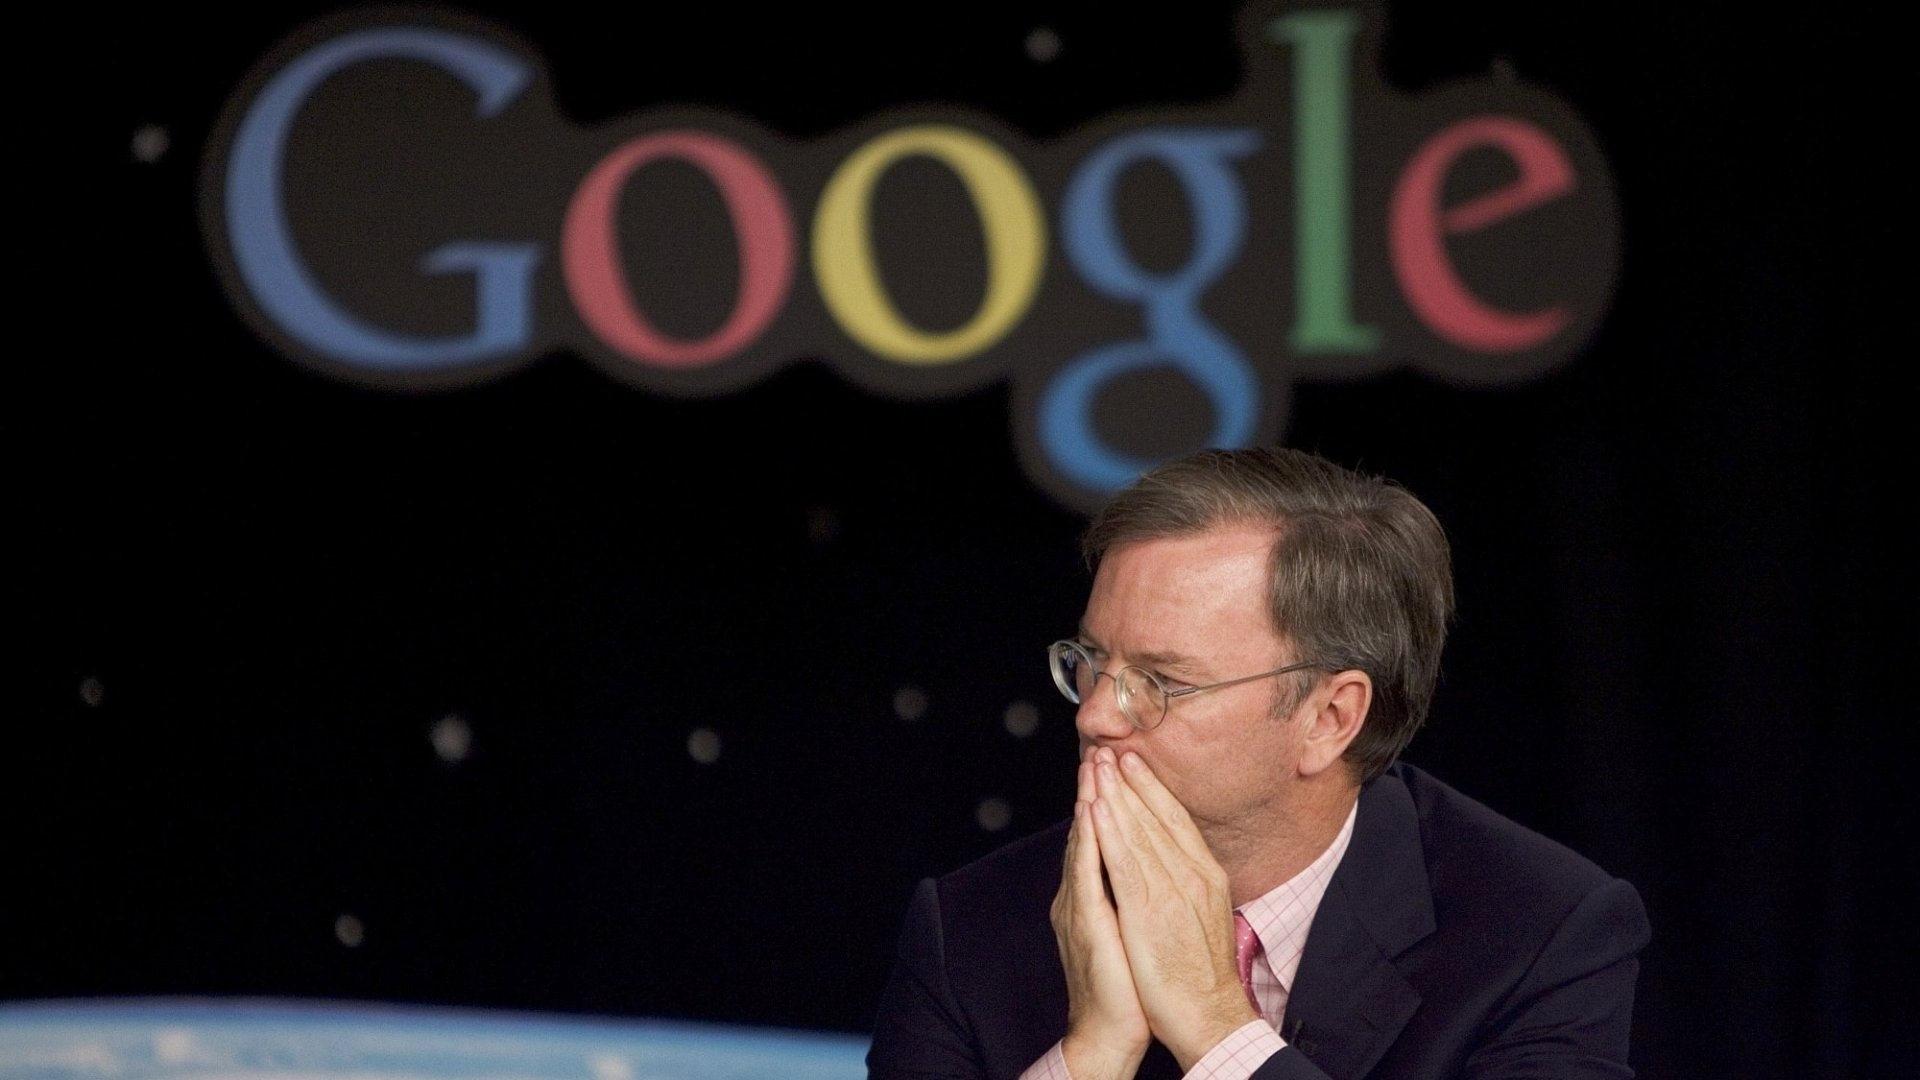 Google's Eric Schmidt to Help Advise Military, but Not on Military Stuff